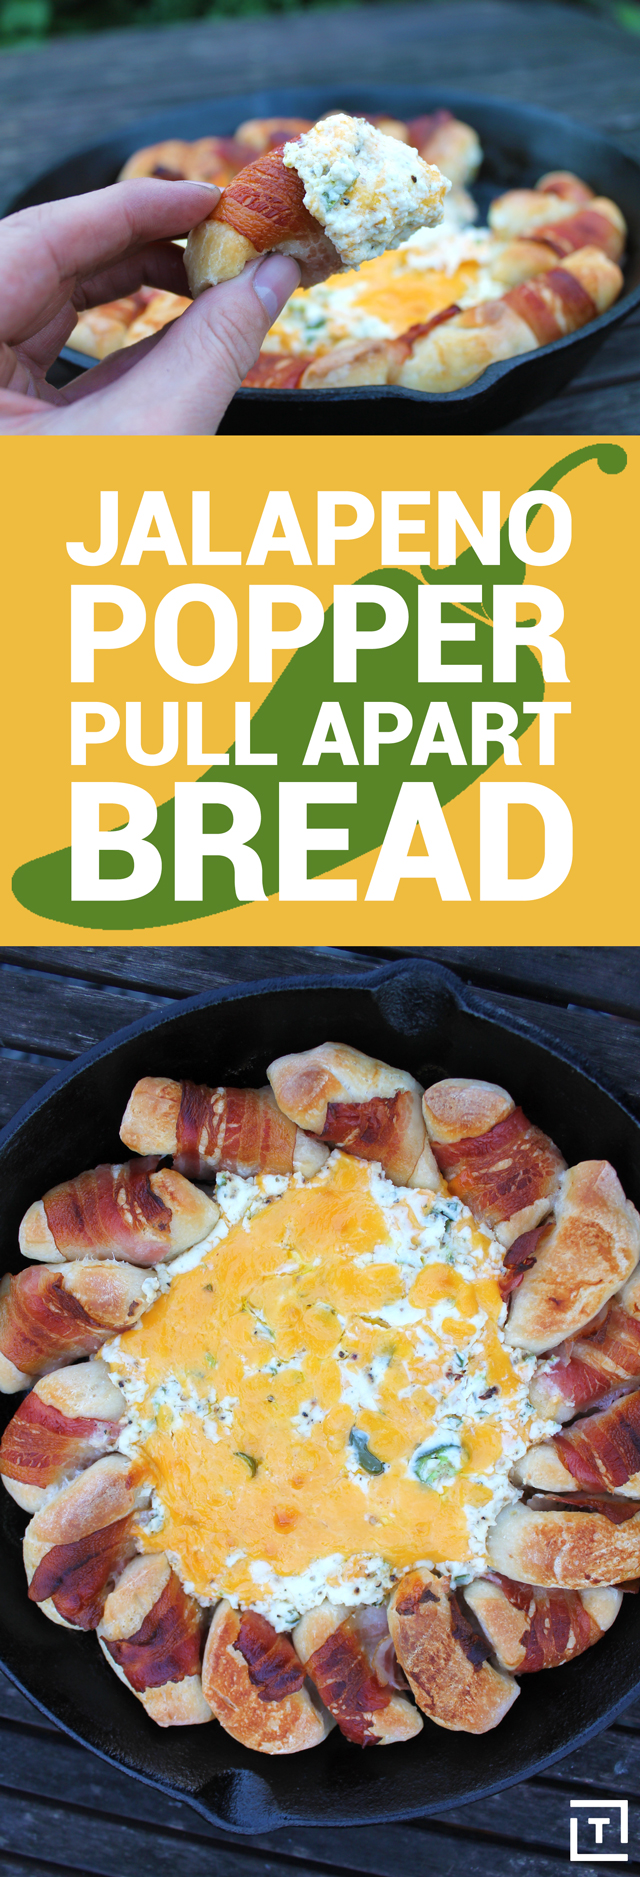 how to make jalapeño popper pull apart bread recipe thrillist